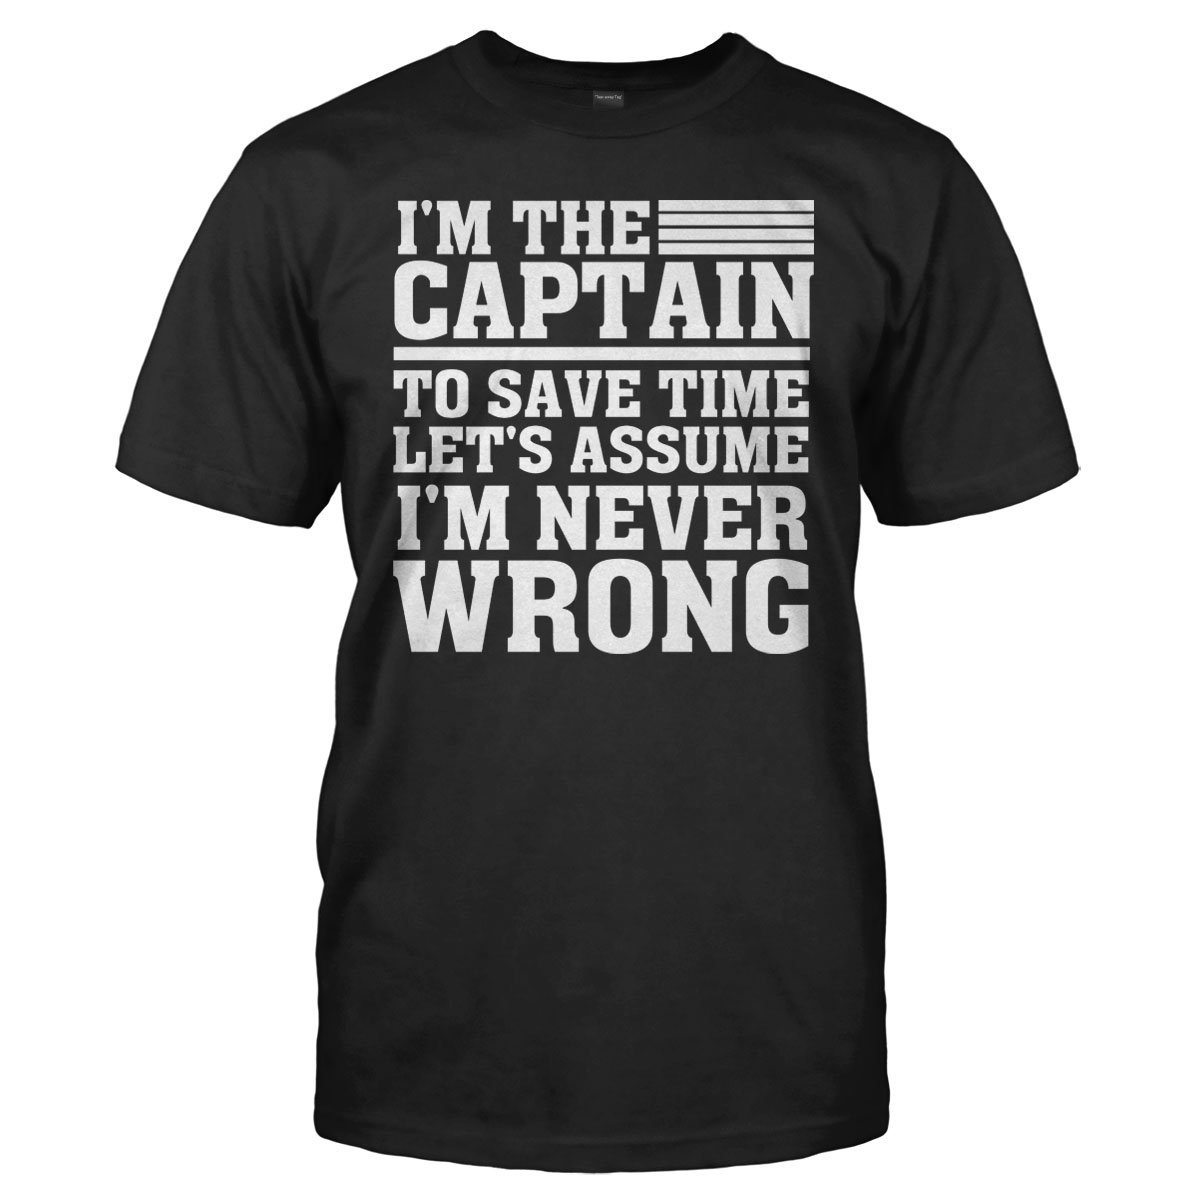 I'm the Captain Therefore I'm Never Wrong - T Shirt